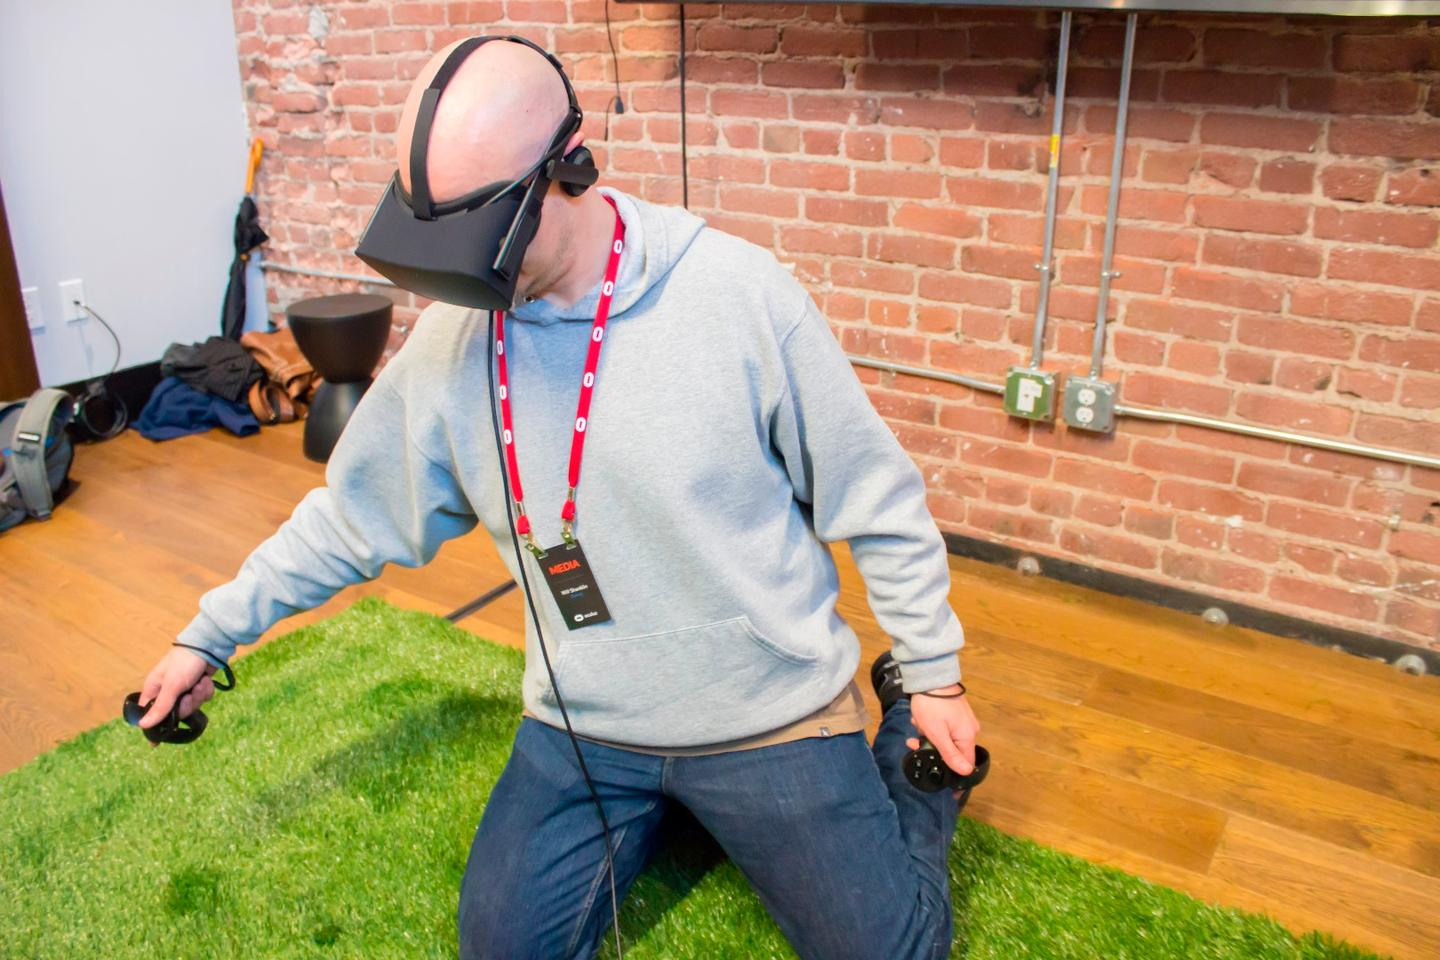 Oculus Touch controllers, demoed at GDC2016